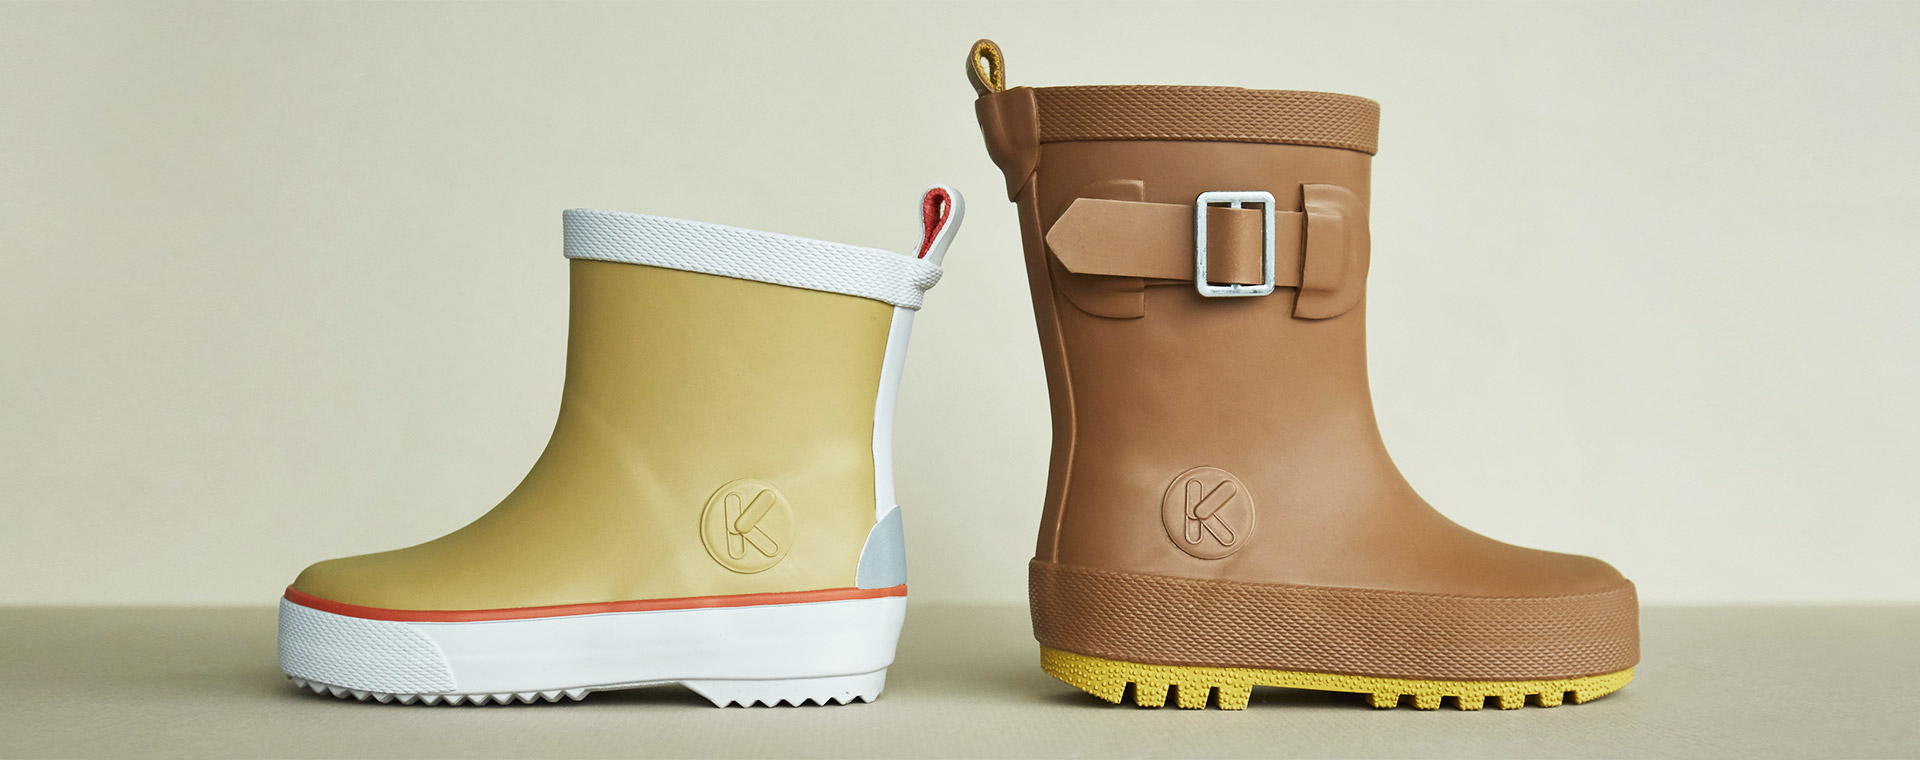 Camel KIDLY Label Ankle Rain Boot